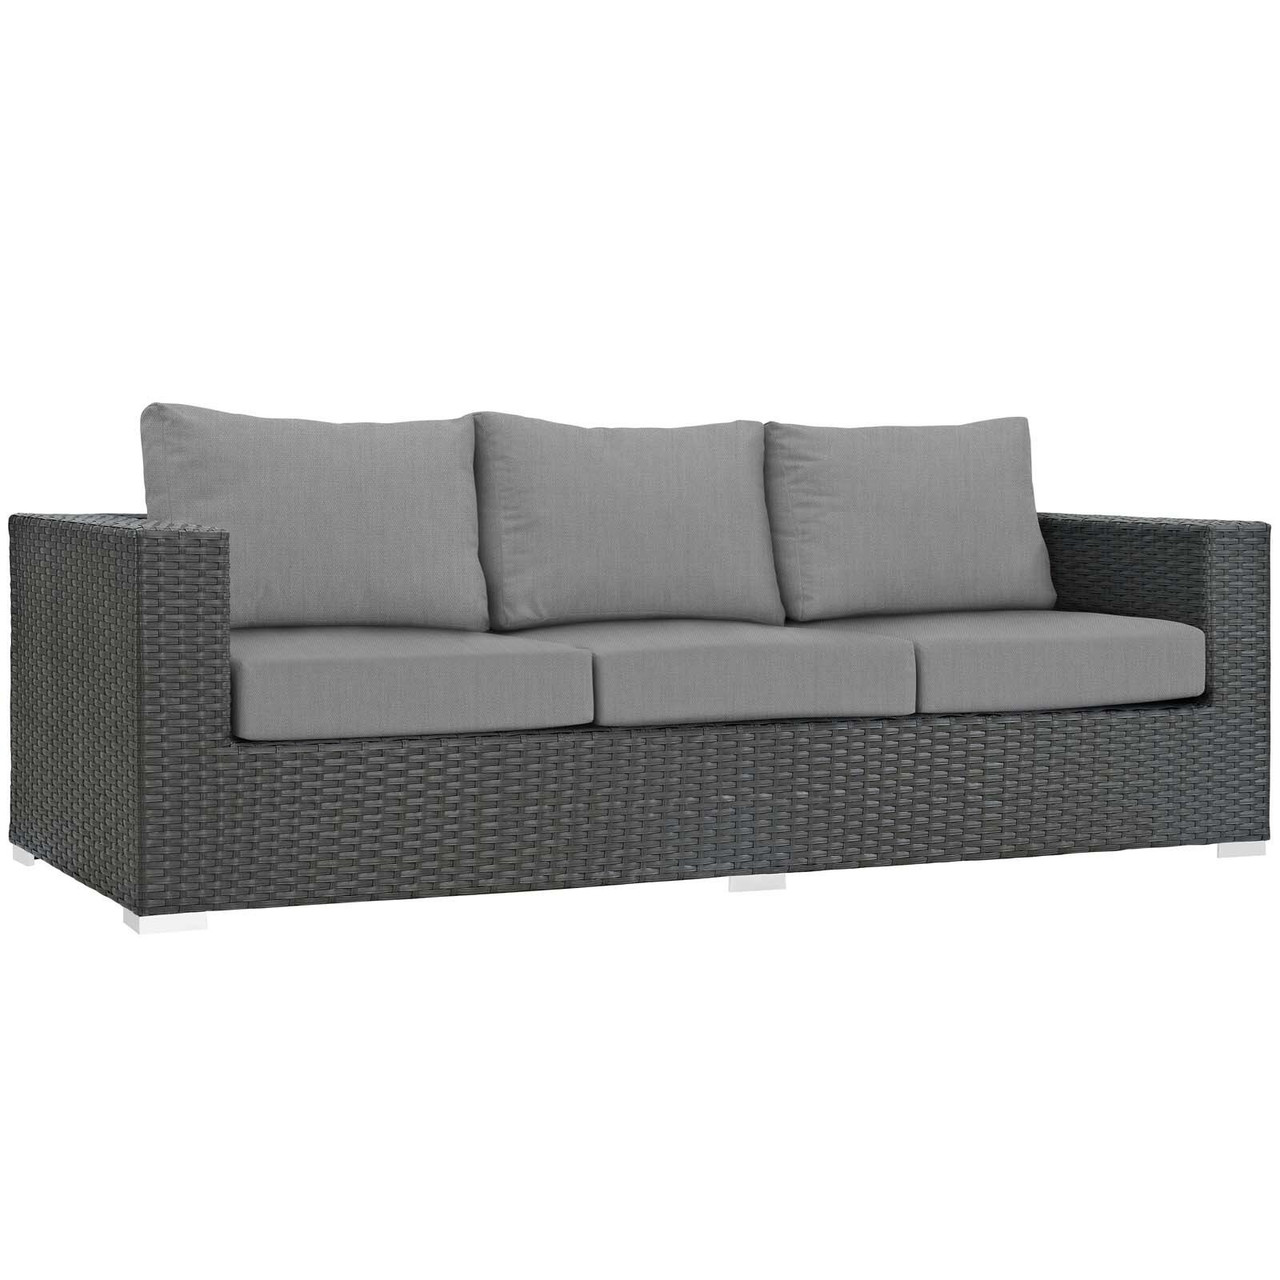 Outdoor Sofas and Love Seats